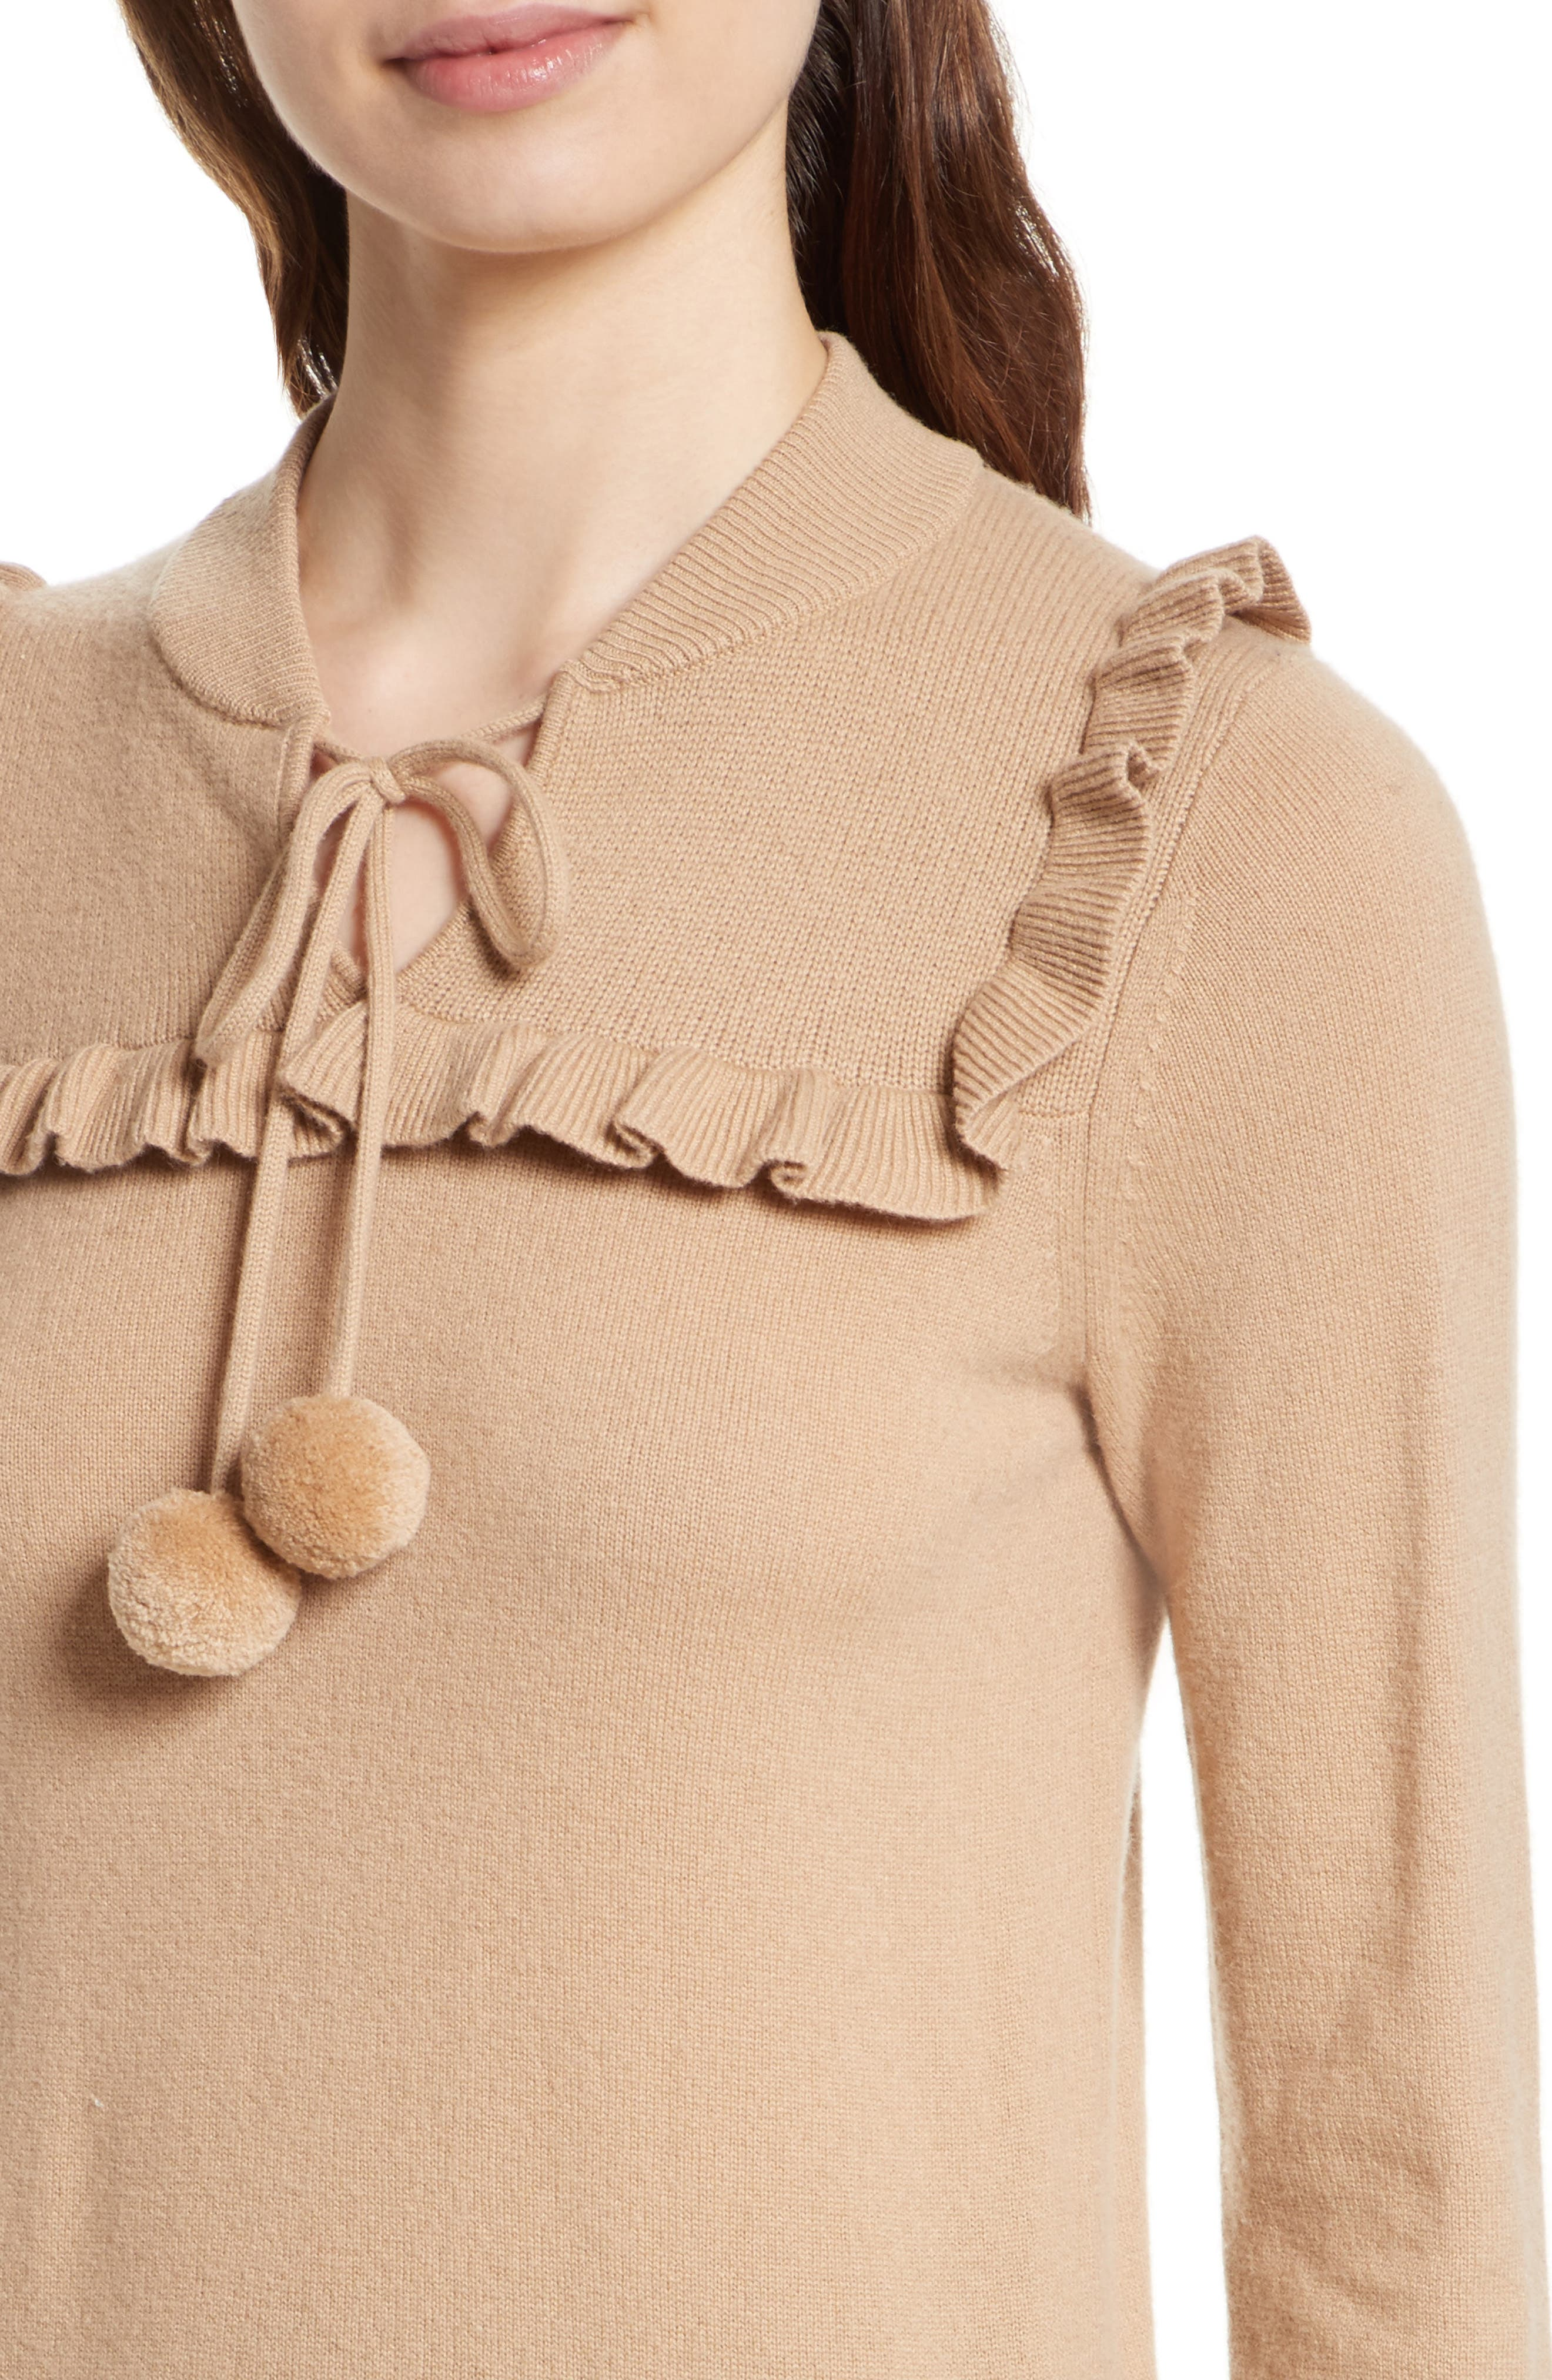 pompom wool & cashmere sweater,                             Alternate thumbnail 4, color,                             258